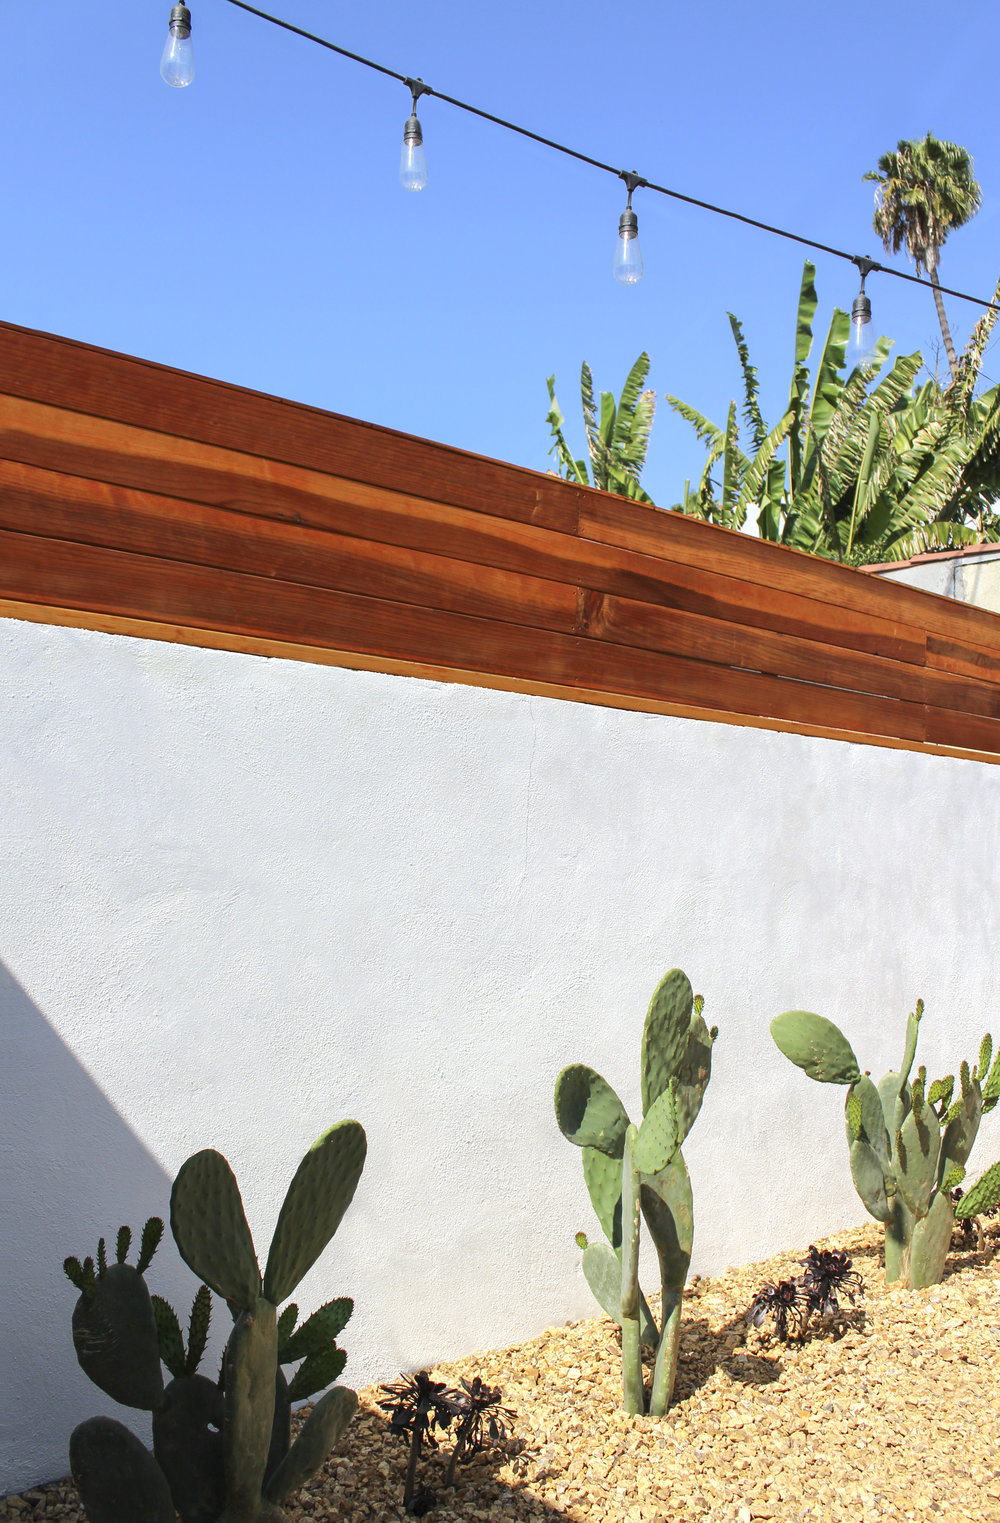 Redwood fence sits atop a traditional white stucco wall while prickly pear cactus rests in colored gravel, giving this area a hip desert feel.